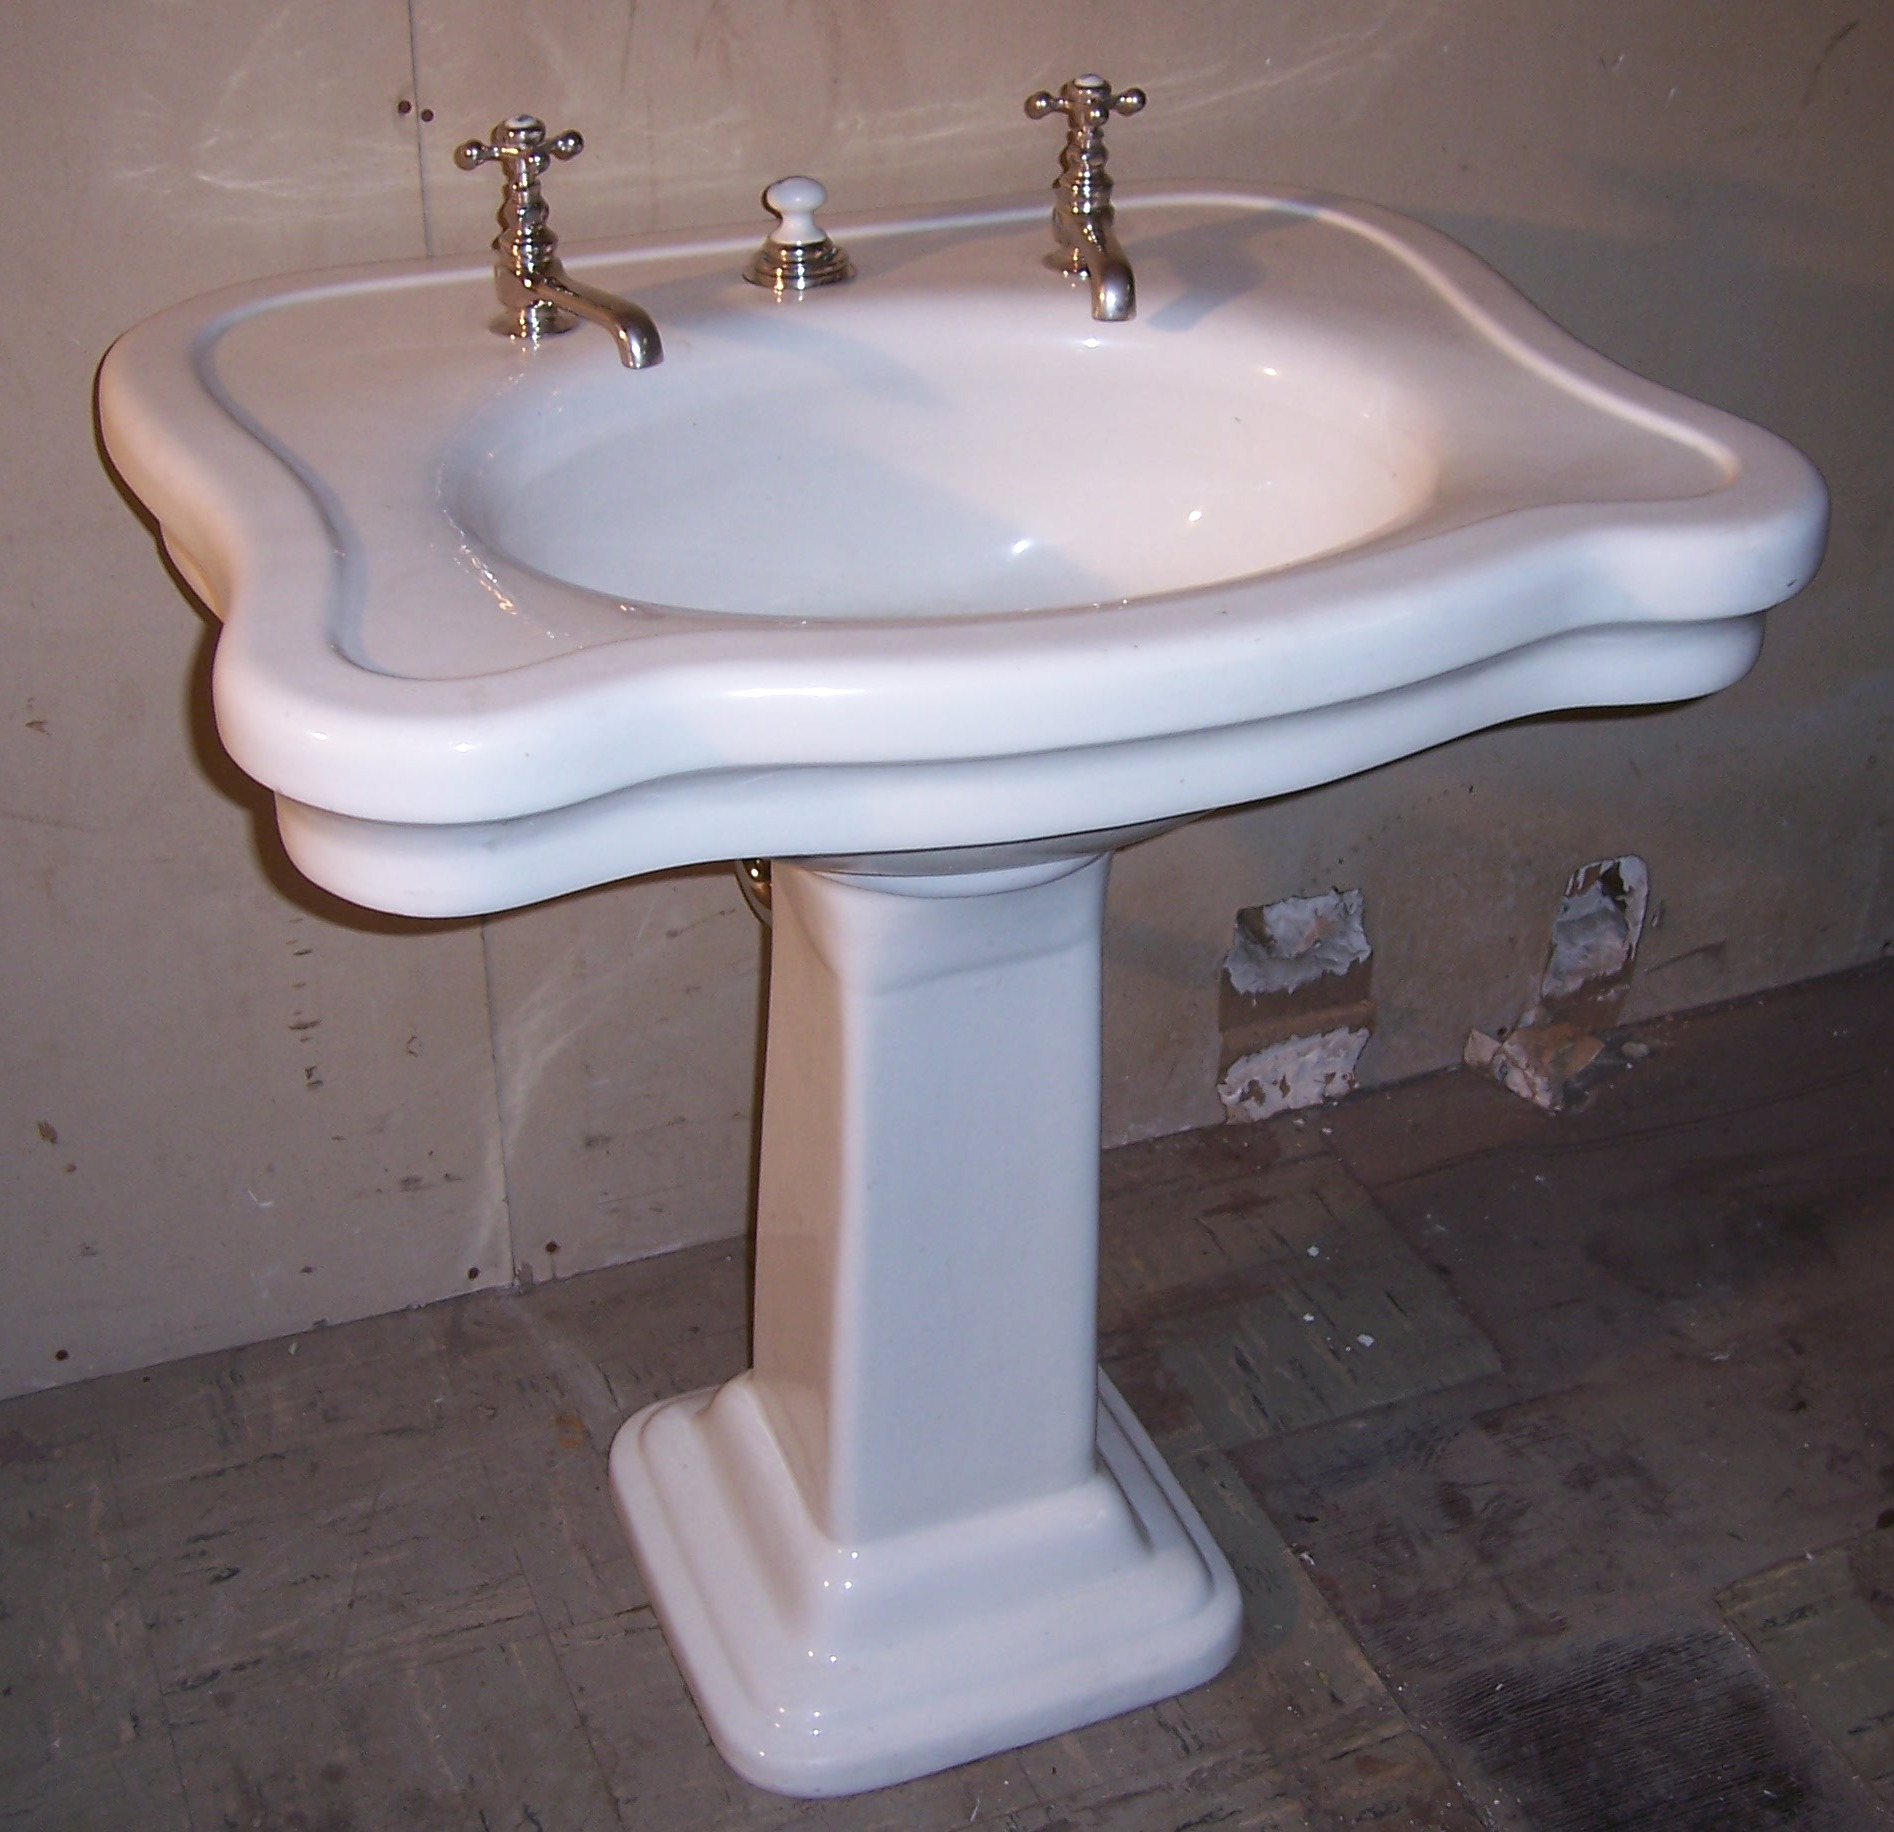 Pedestal Sinks VintageBathroom